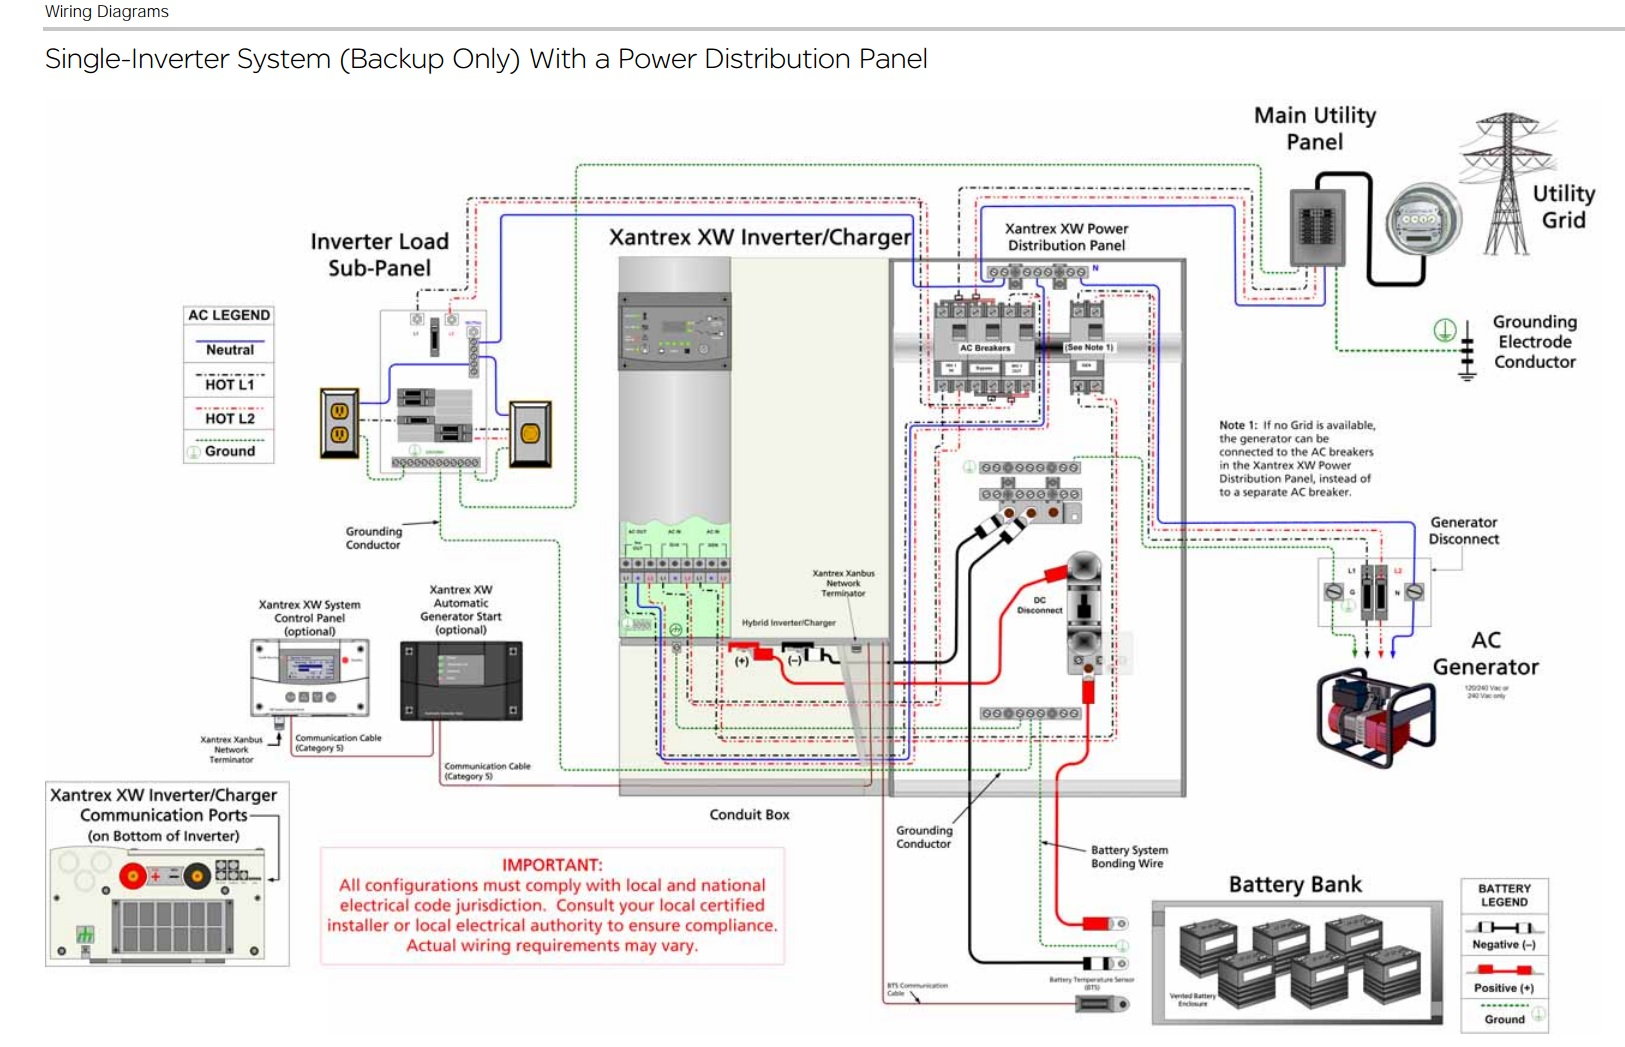 Xantrex Inverter Charger Wiring Diagram - Berlingo Wiring Diagram  1996chevy.au-delice-limousin.fr | Xantrex Ac Wiring Diagram |  | Bege Wiring Diagram - Bege Wiring Diagram Full Edition